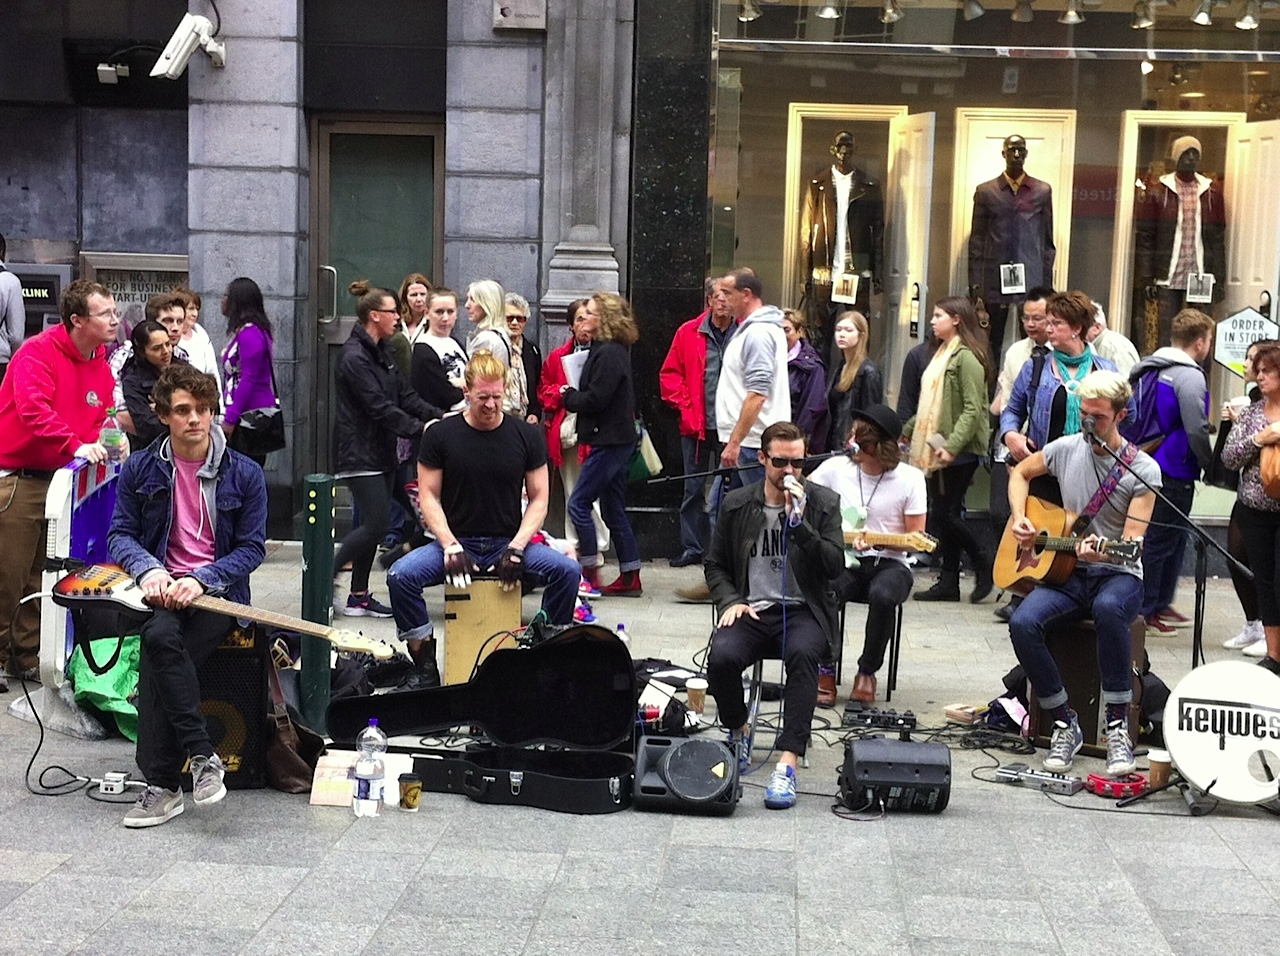 Dublin had some of the best buskers I have ever seen.